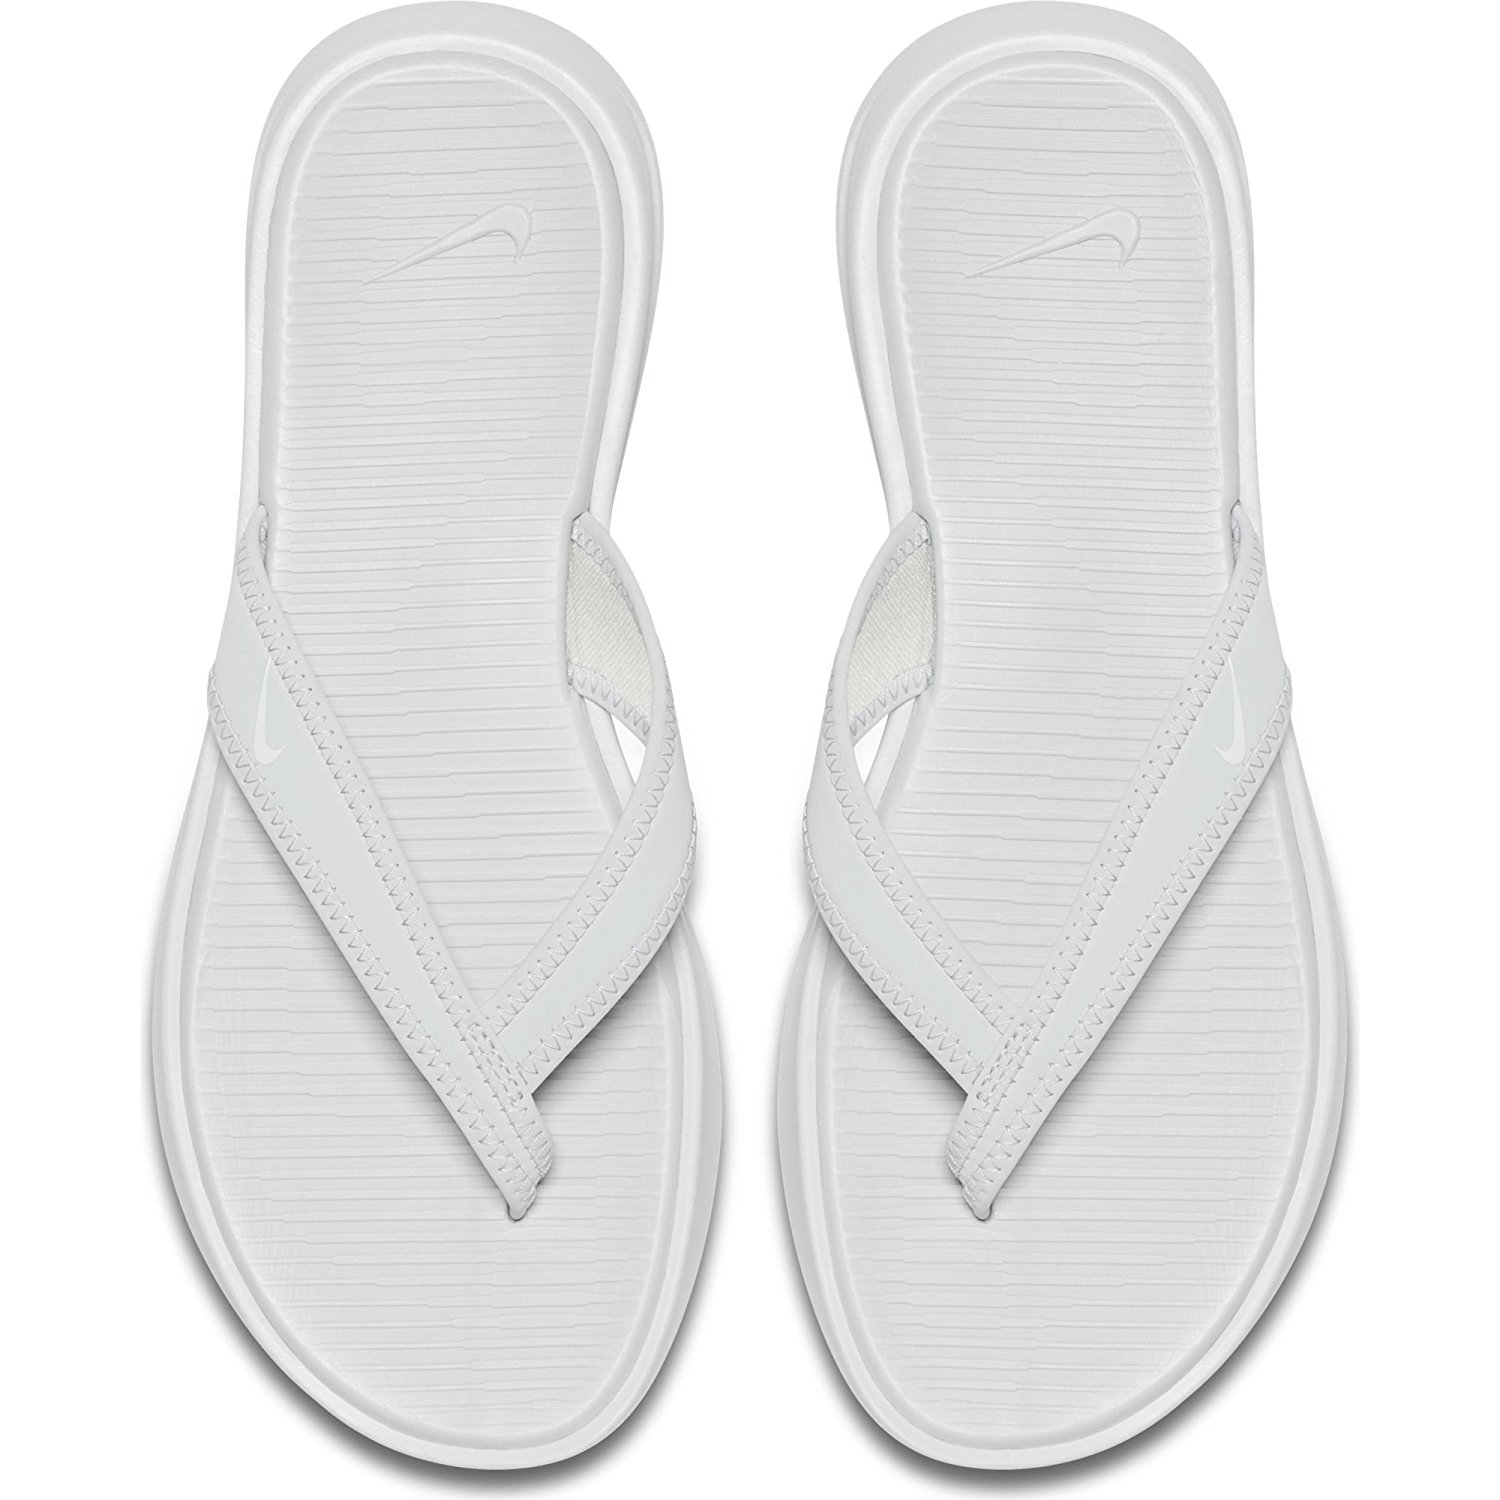 Nike Women's Celso Thong Sandals Pure Platinum/White